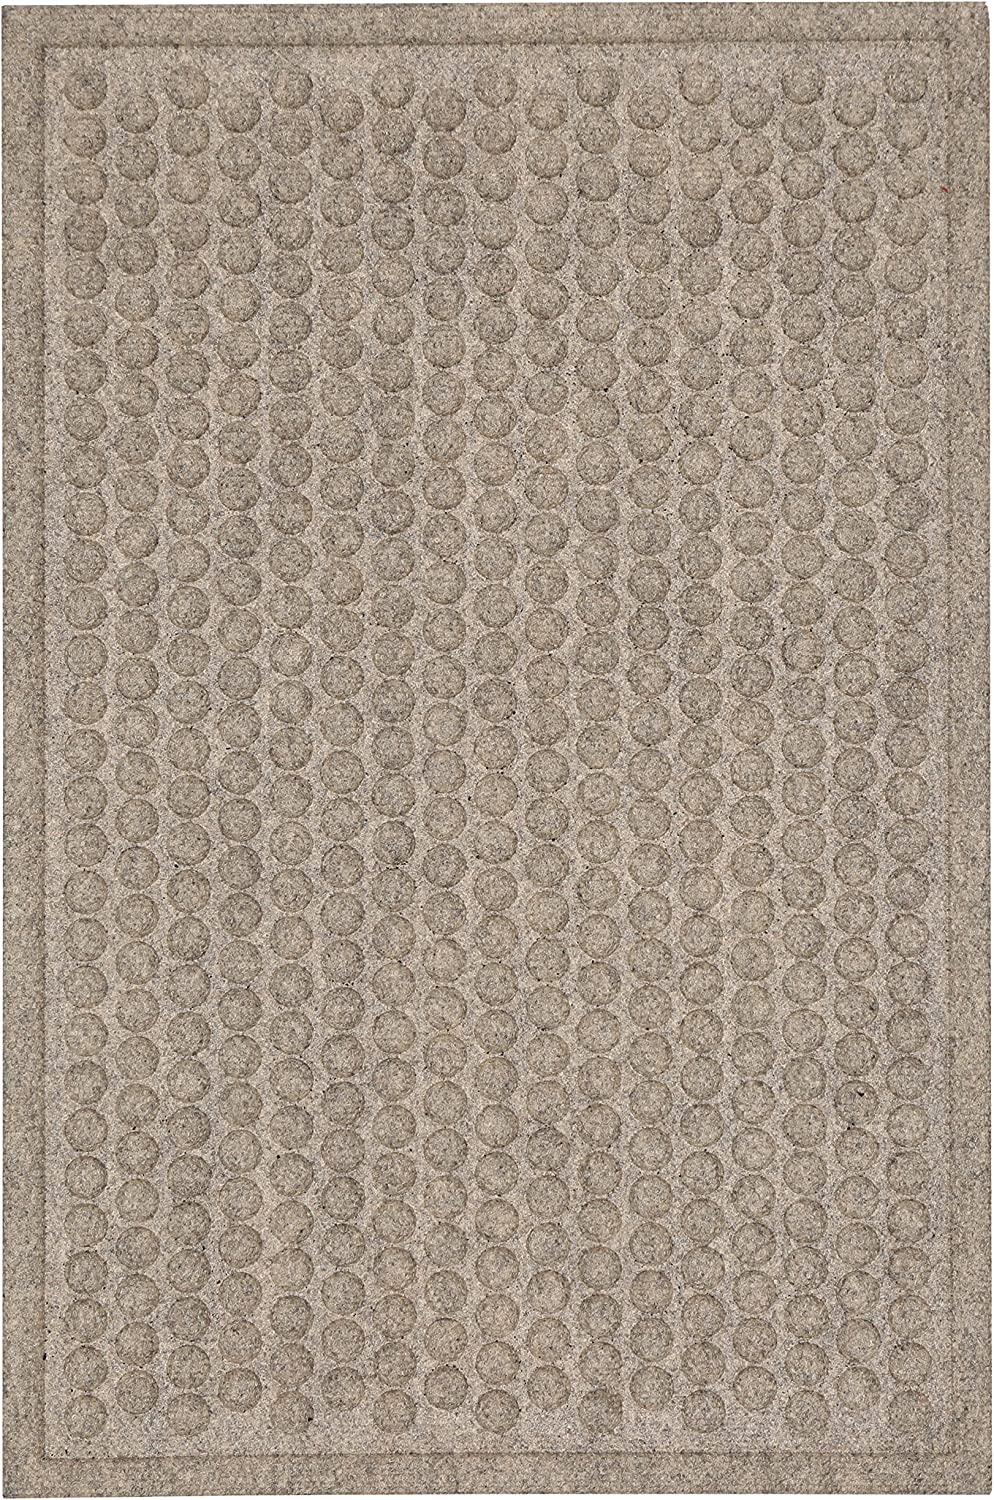 "Mohawk Home Home Dots Impressions Chestnut Durable Door Mat, 1'6""x2'6"", Tan"